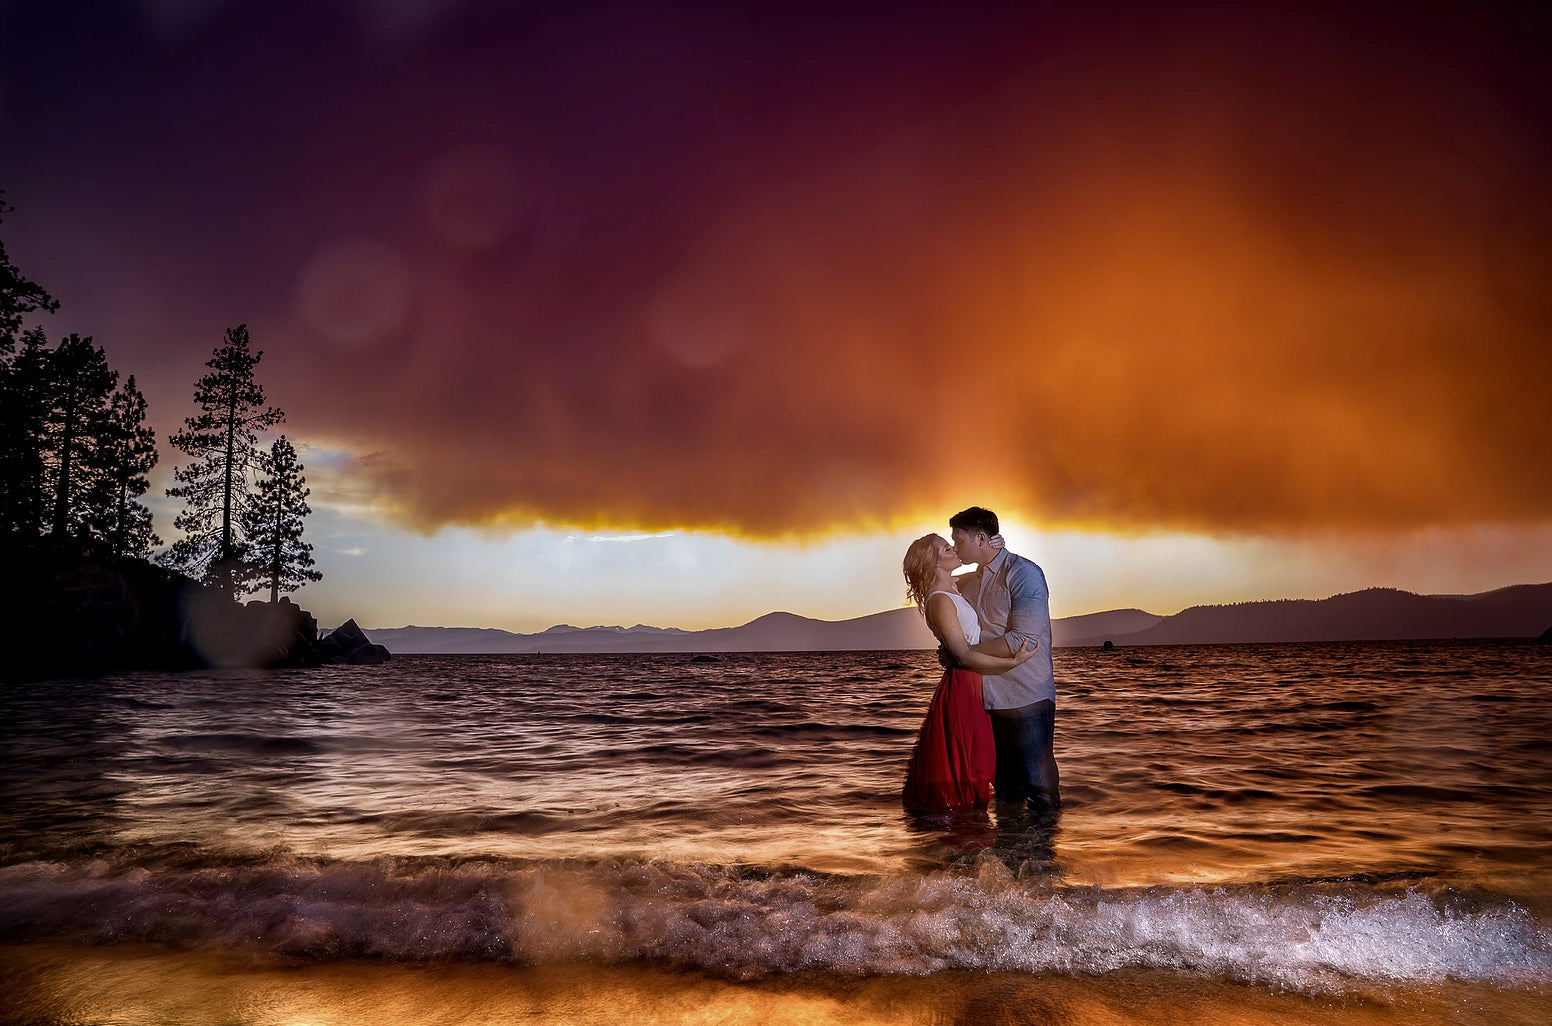 A couple kissing each other while standing on the beach with their feet immersed in seawater during sunset